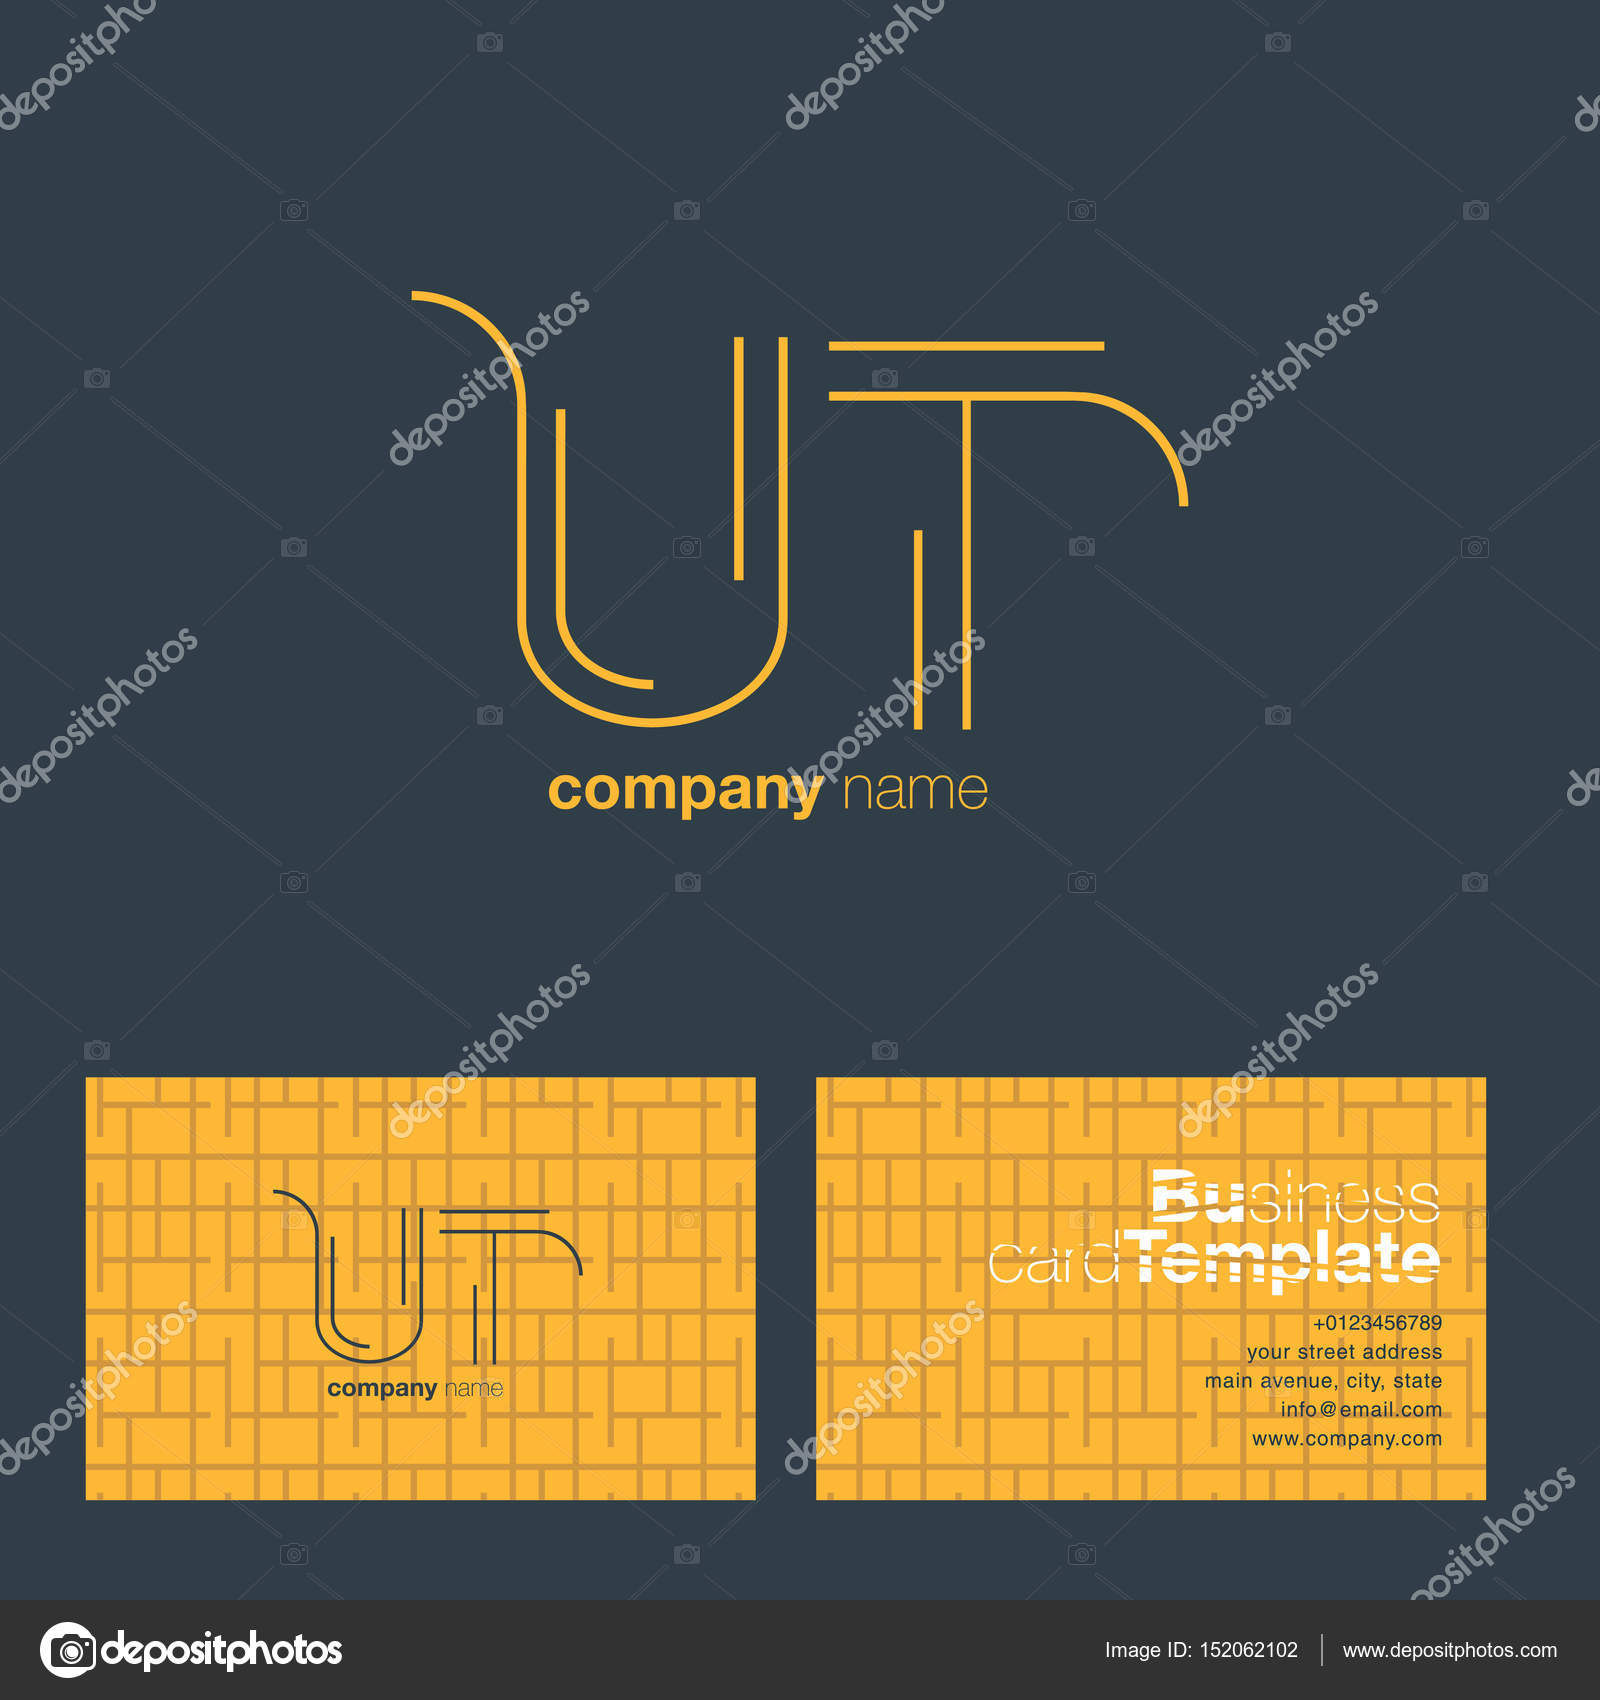 Ut letters logo business card stock vector brainbistro 152062102 ut letters logo business card stock vector colourmoves